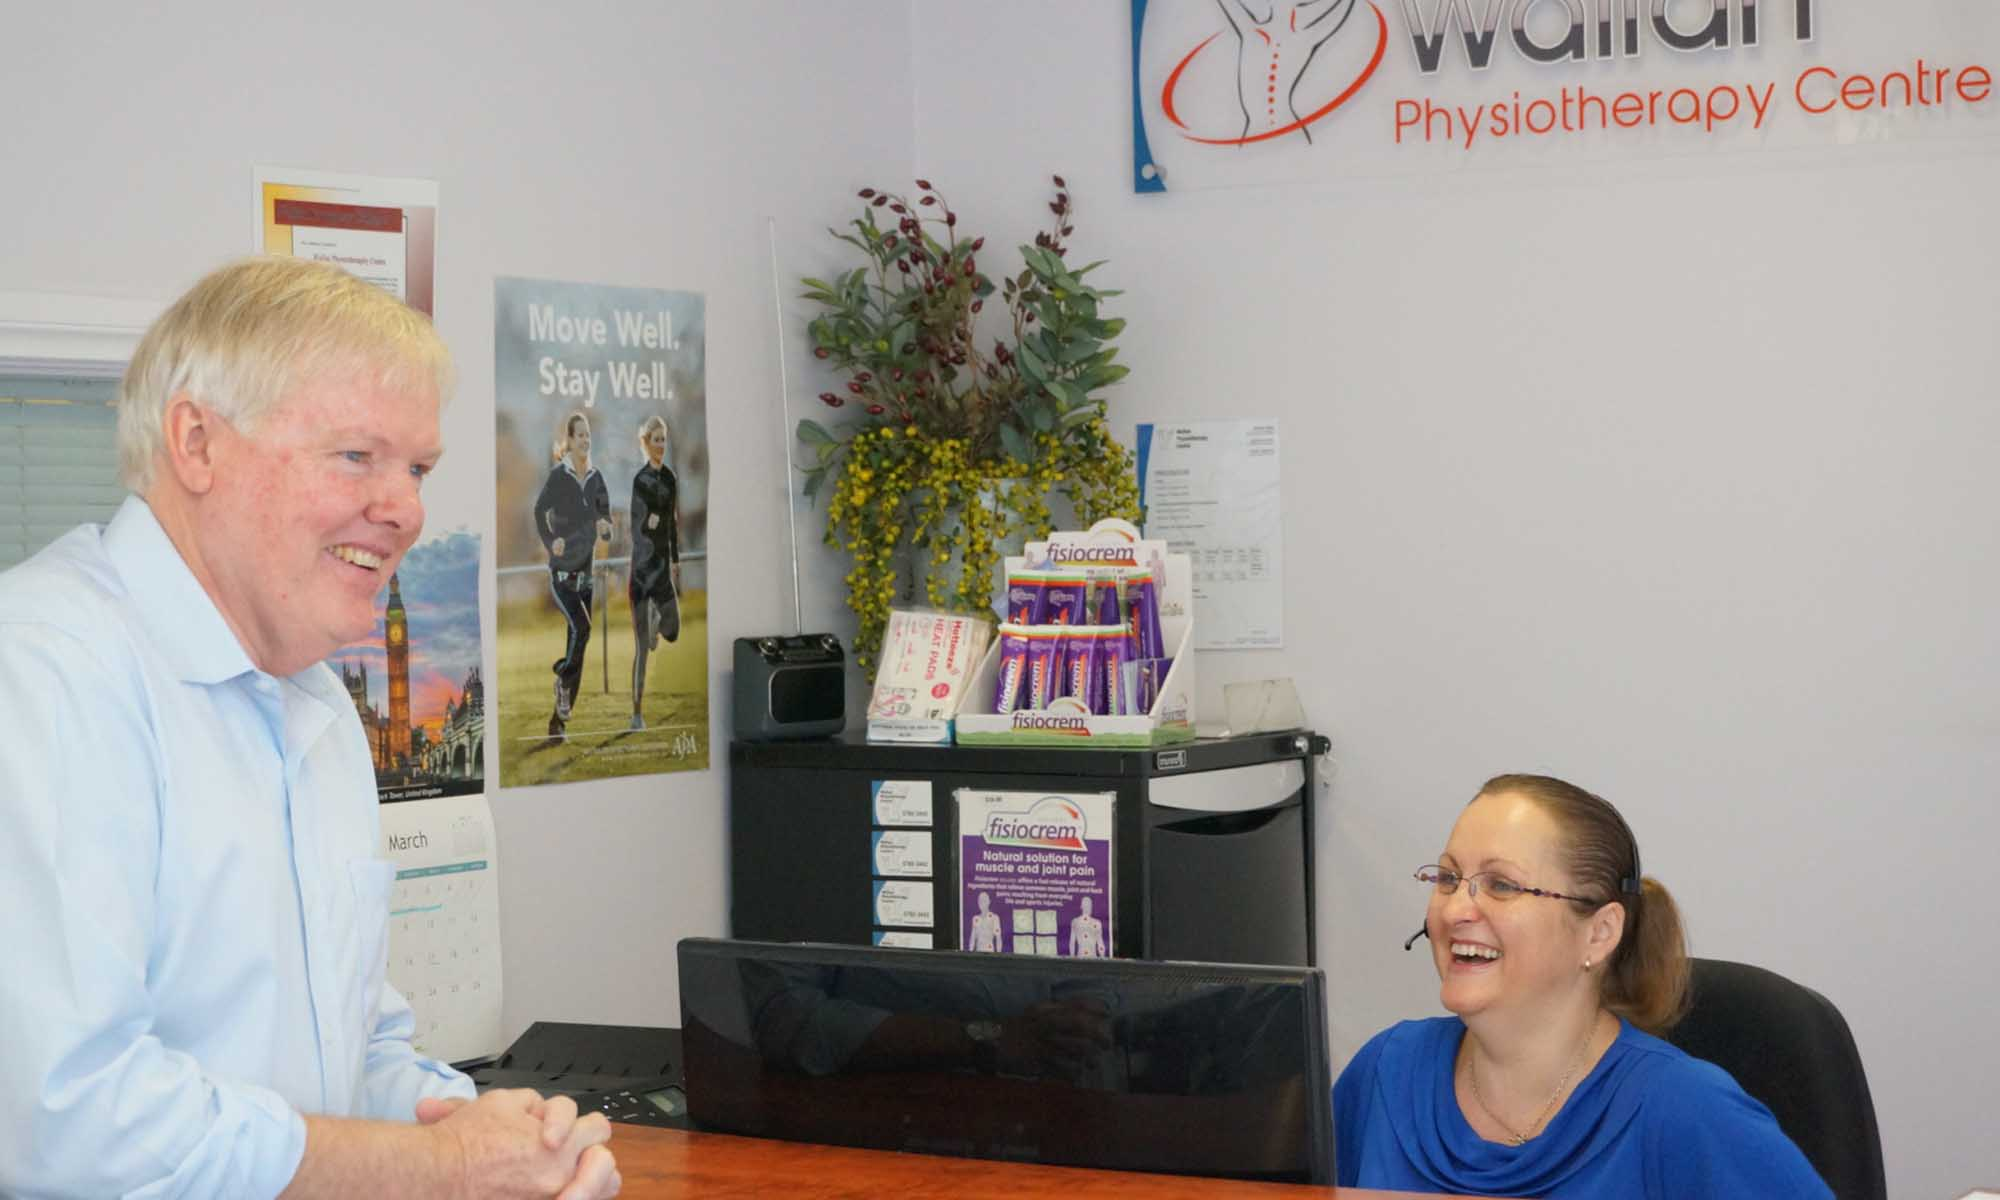 Wallan Physiotherapy Centre receptionist